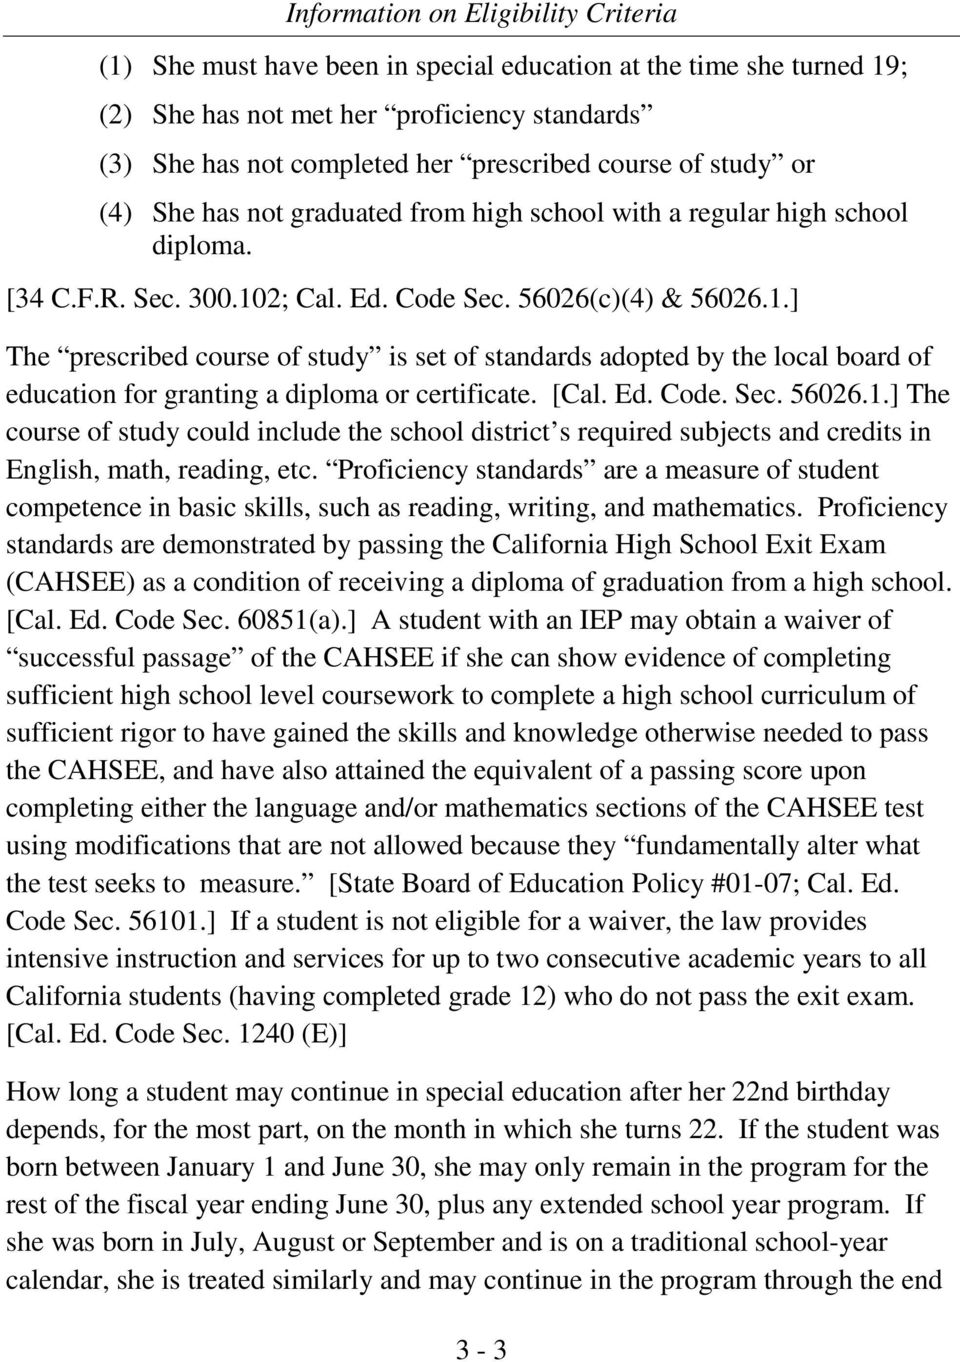 2; Cal. Ed. Code Sec. 56026(c)(4) & 56026.1.] The prescribed course of study is set of standards adopted by the local board of education for granting a diploma or certificate. [Cal. Ed. Code. Sec. 56026.1.] The course of study could include the school district s required subjects and credits in English, math, reading, etc.